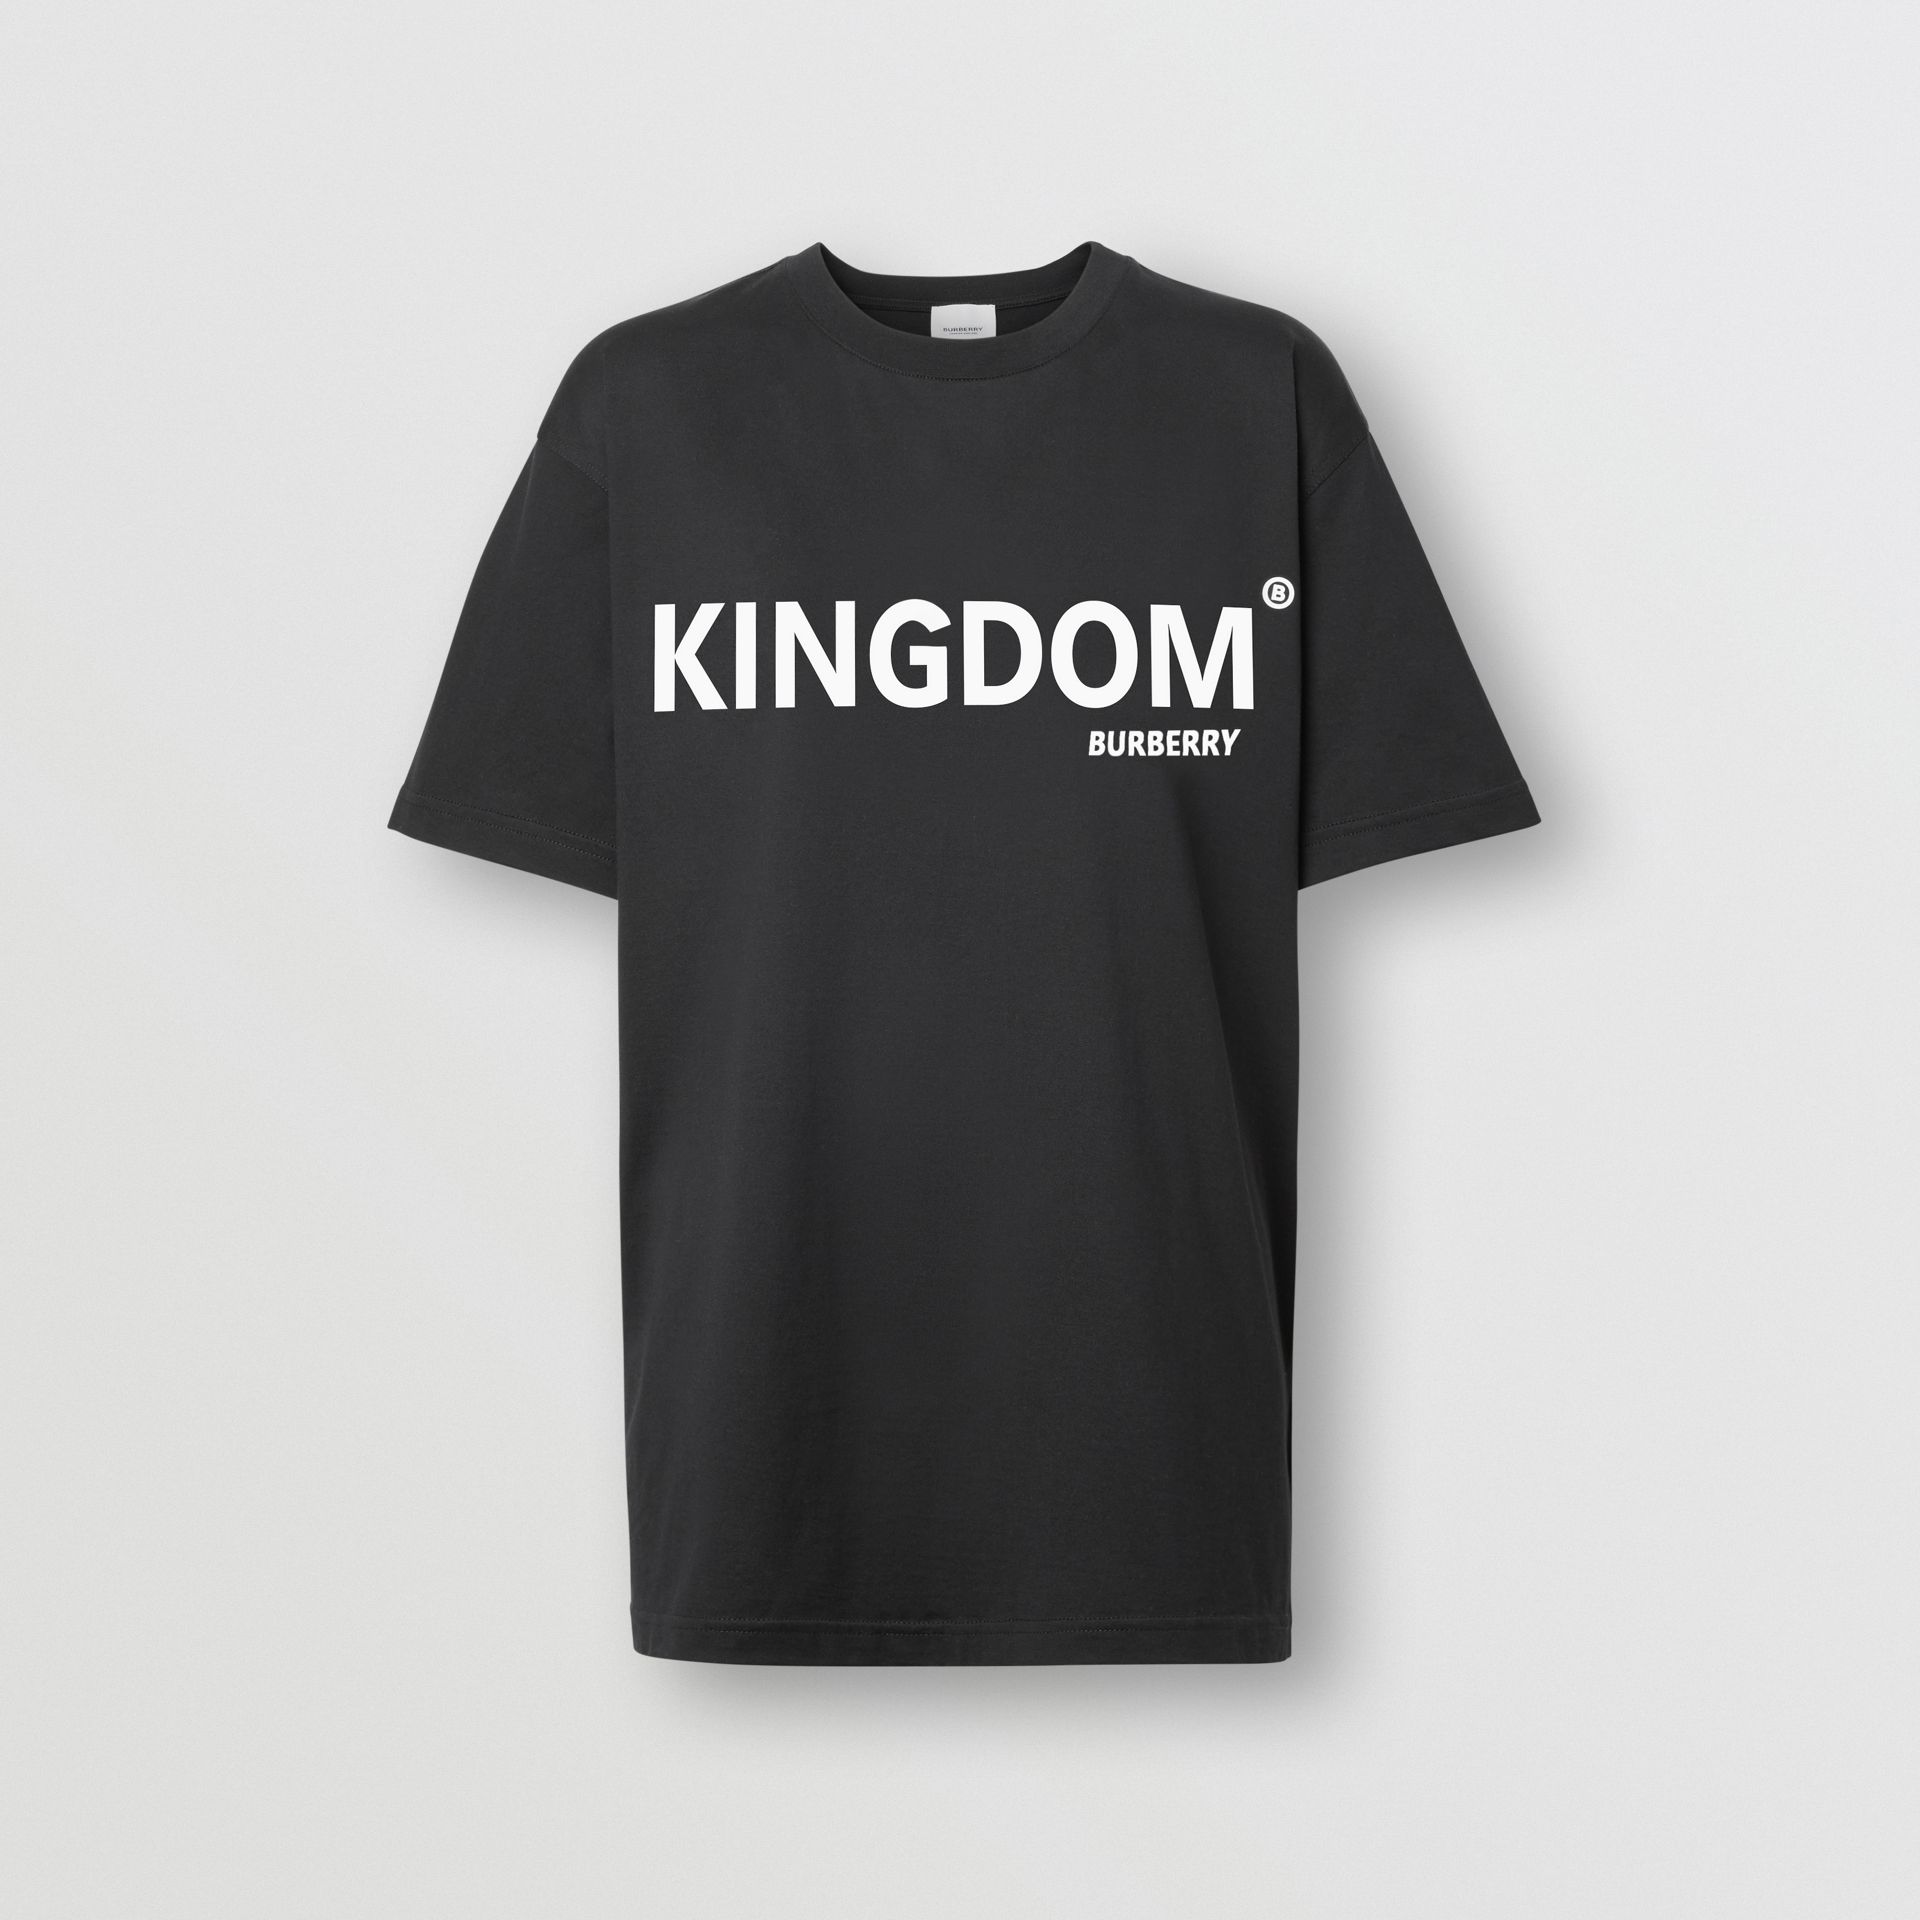 Kingdom Print Cotton T-shirt in Black - Women | Burberry - gallery image 3